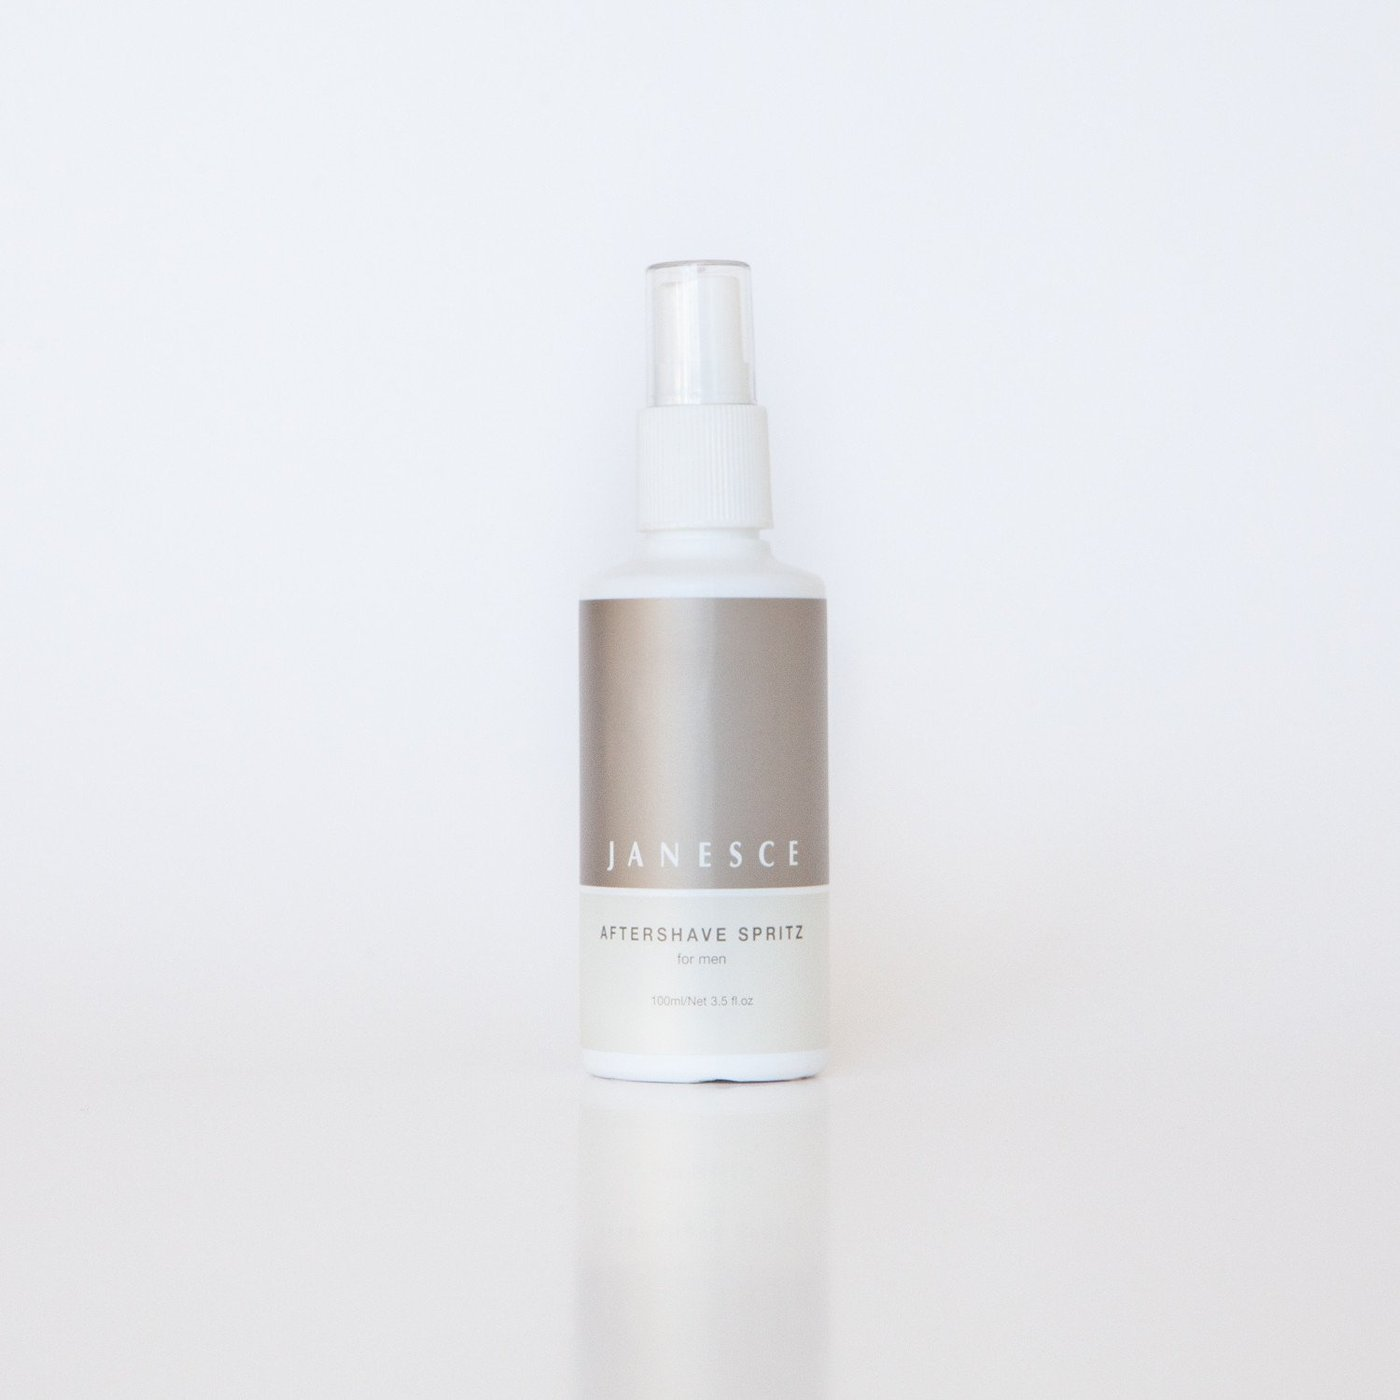 Janesce After Shave Spritz available online at Vital Balance